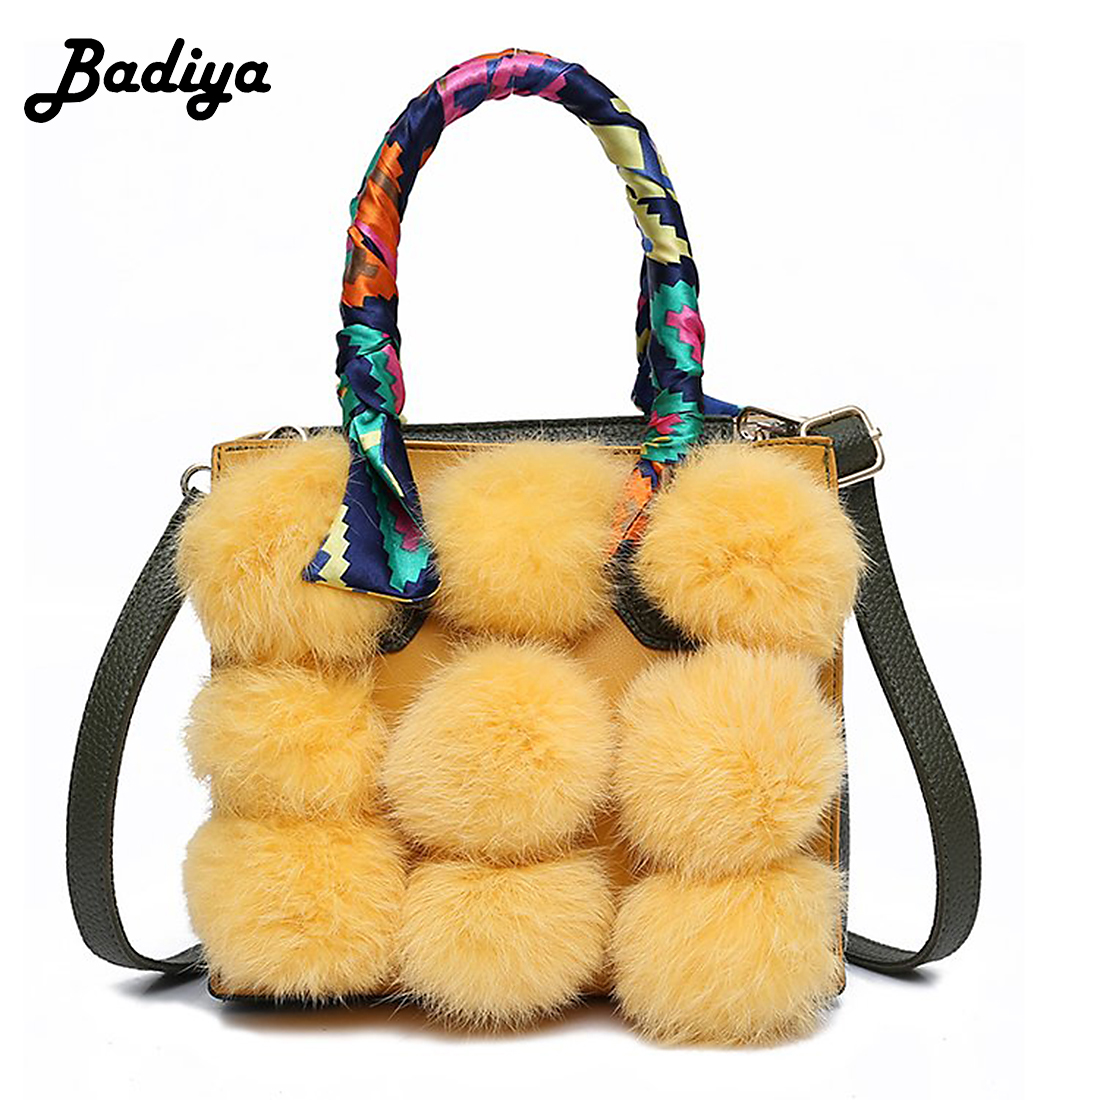 Winter Fashion Rabbit Fur Ball Shoulder Bag Handbag for Women New Design Luxury Female Shoulder Bag